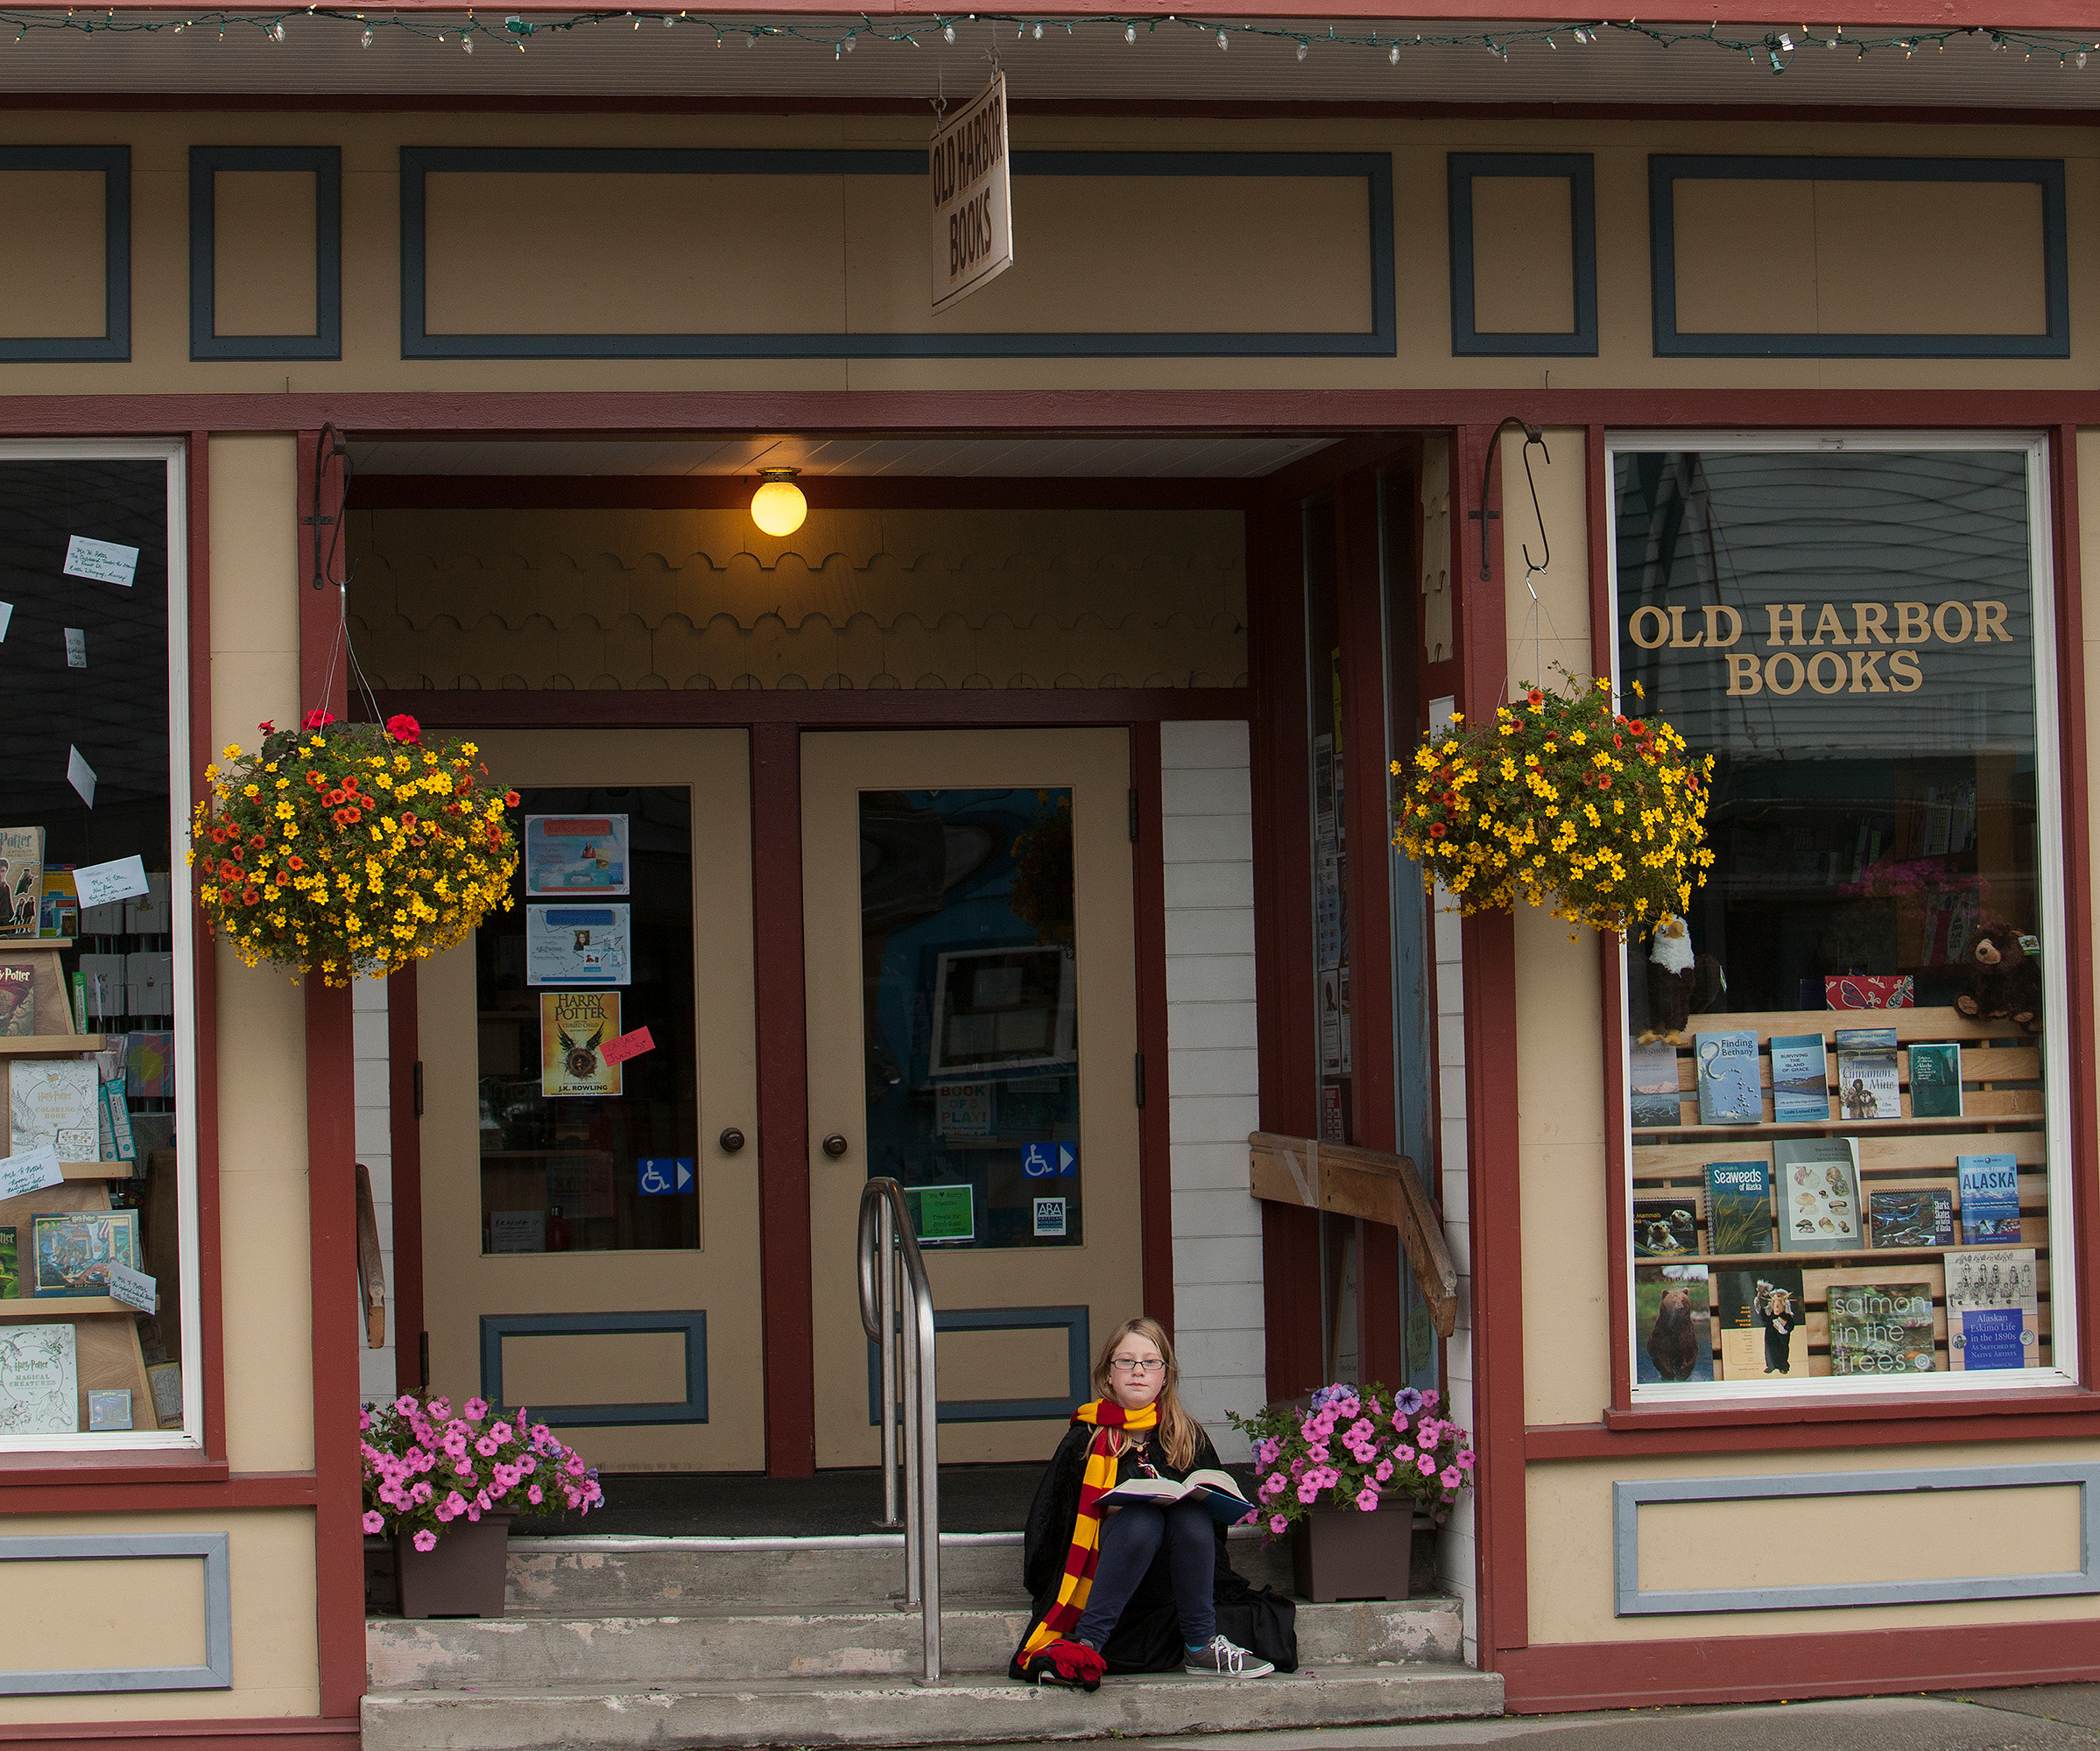 Old Harbor Books exterior with child in Hogwarts uniform on steps.